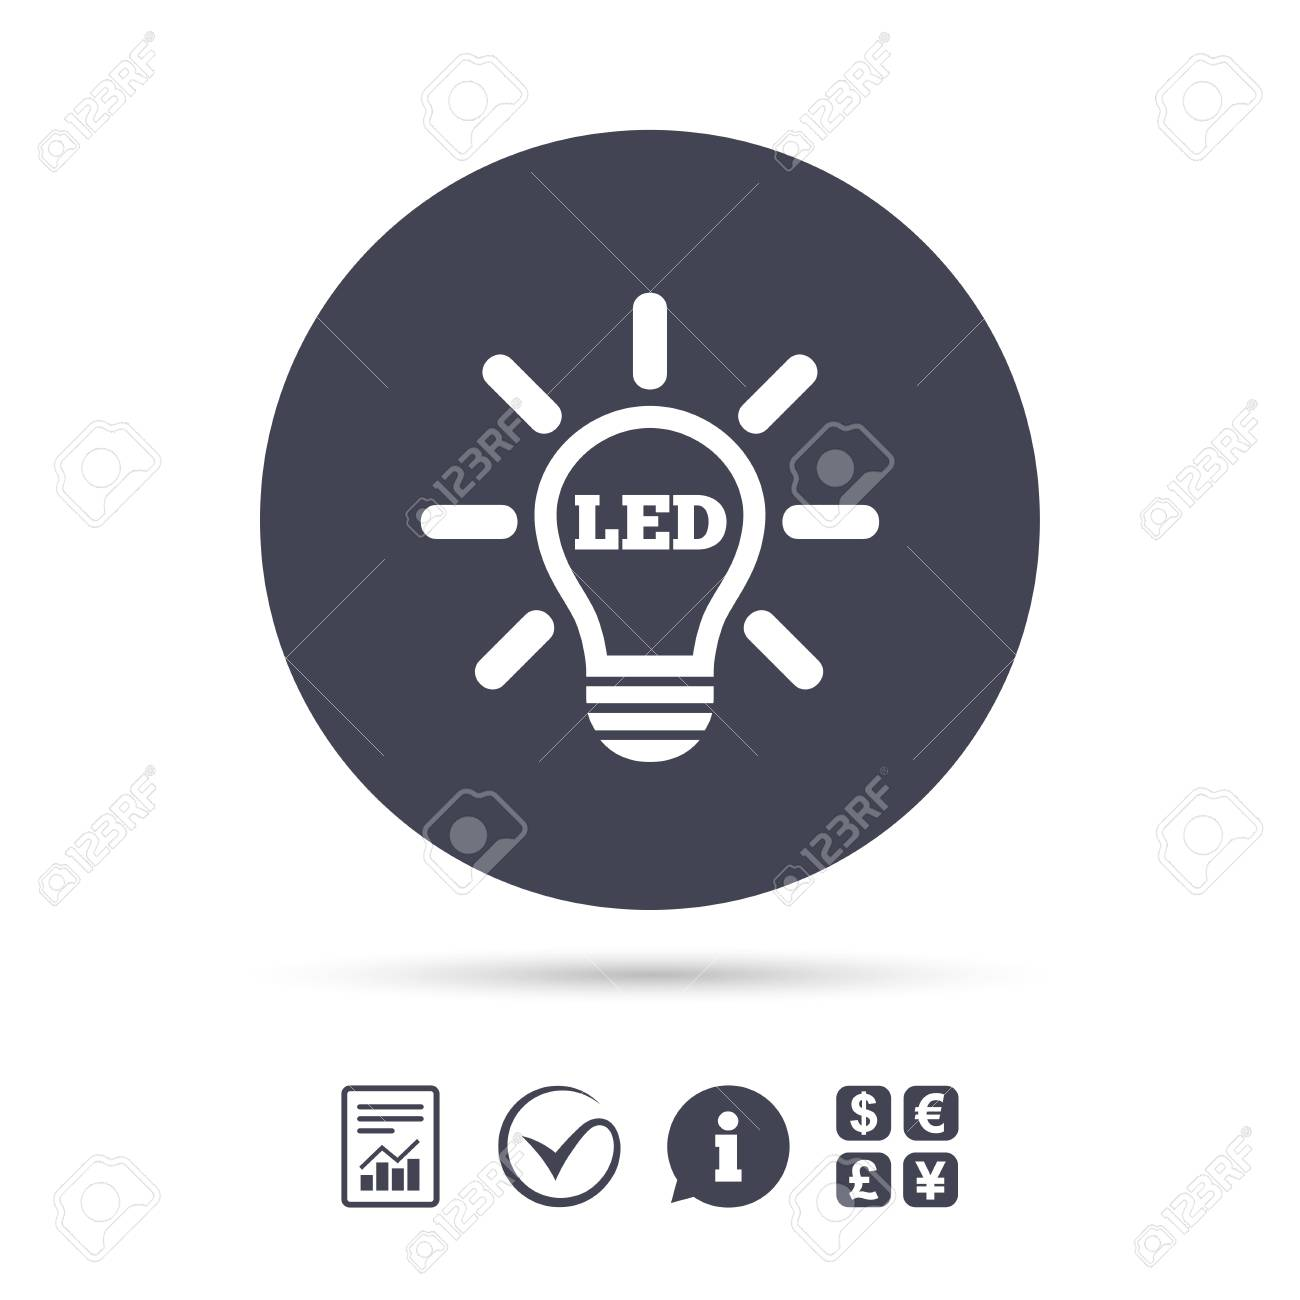 Led light lamp icon energy symbol report document information led light lamp icon energy symbol report document information and check tick icons biocorpaavc Images